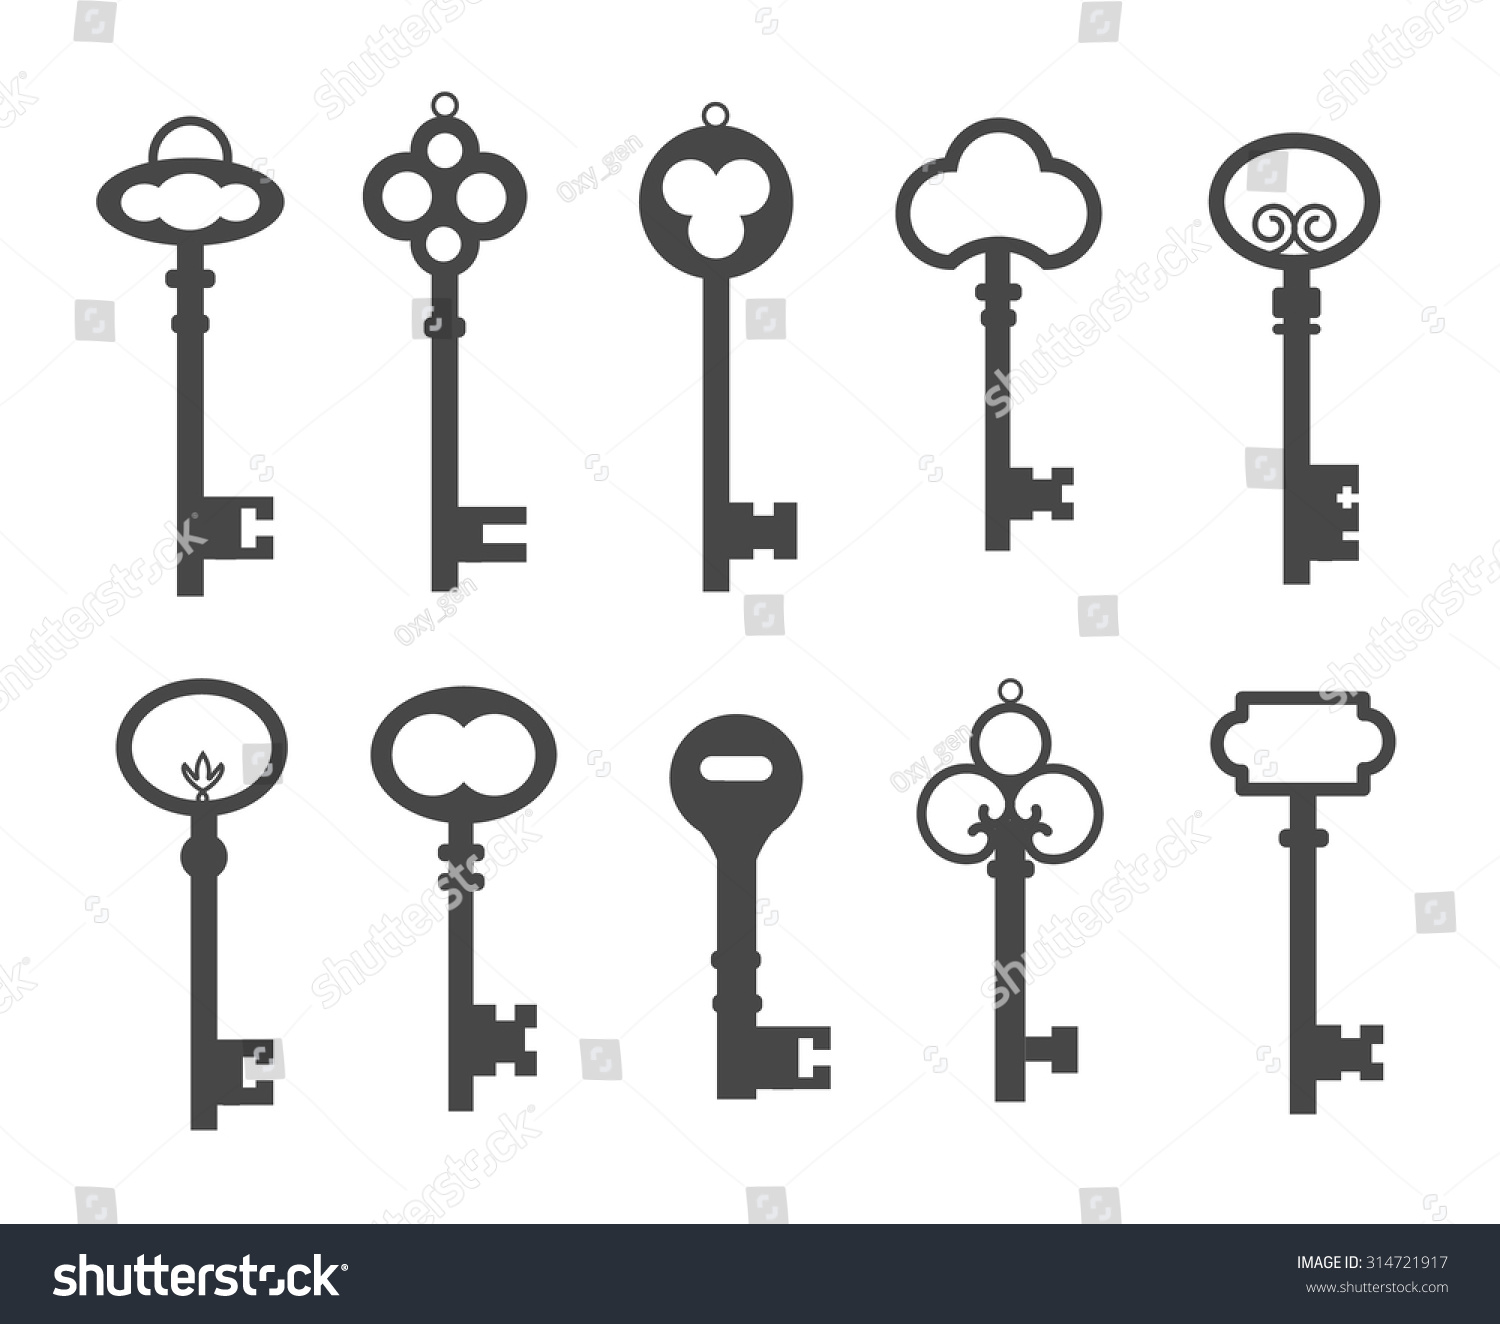 skeleton key clipart free vector - photo #45